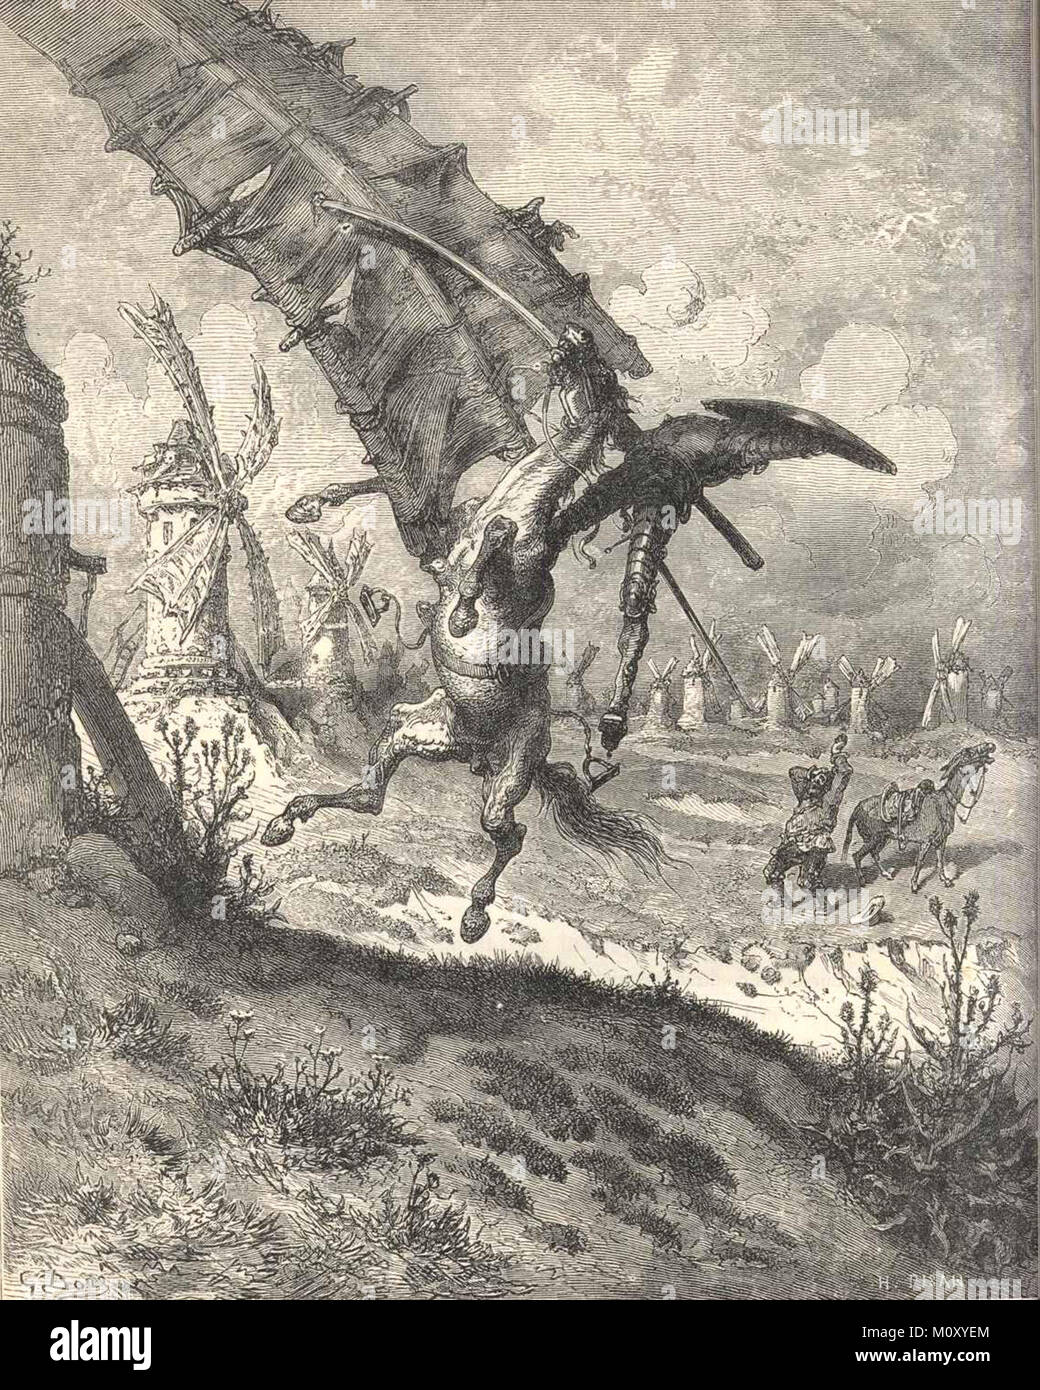 Don Quijote (Don Quixote) Illustration by Gustave Doré, depicting the famous windmill scene. - Stock Image